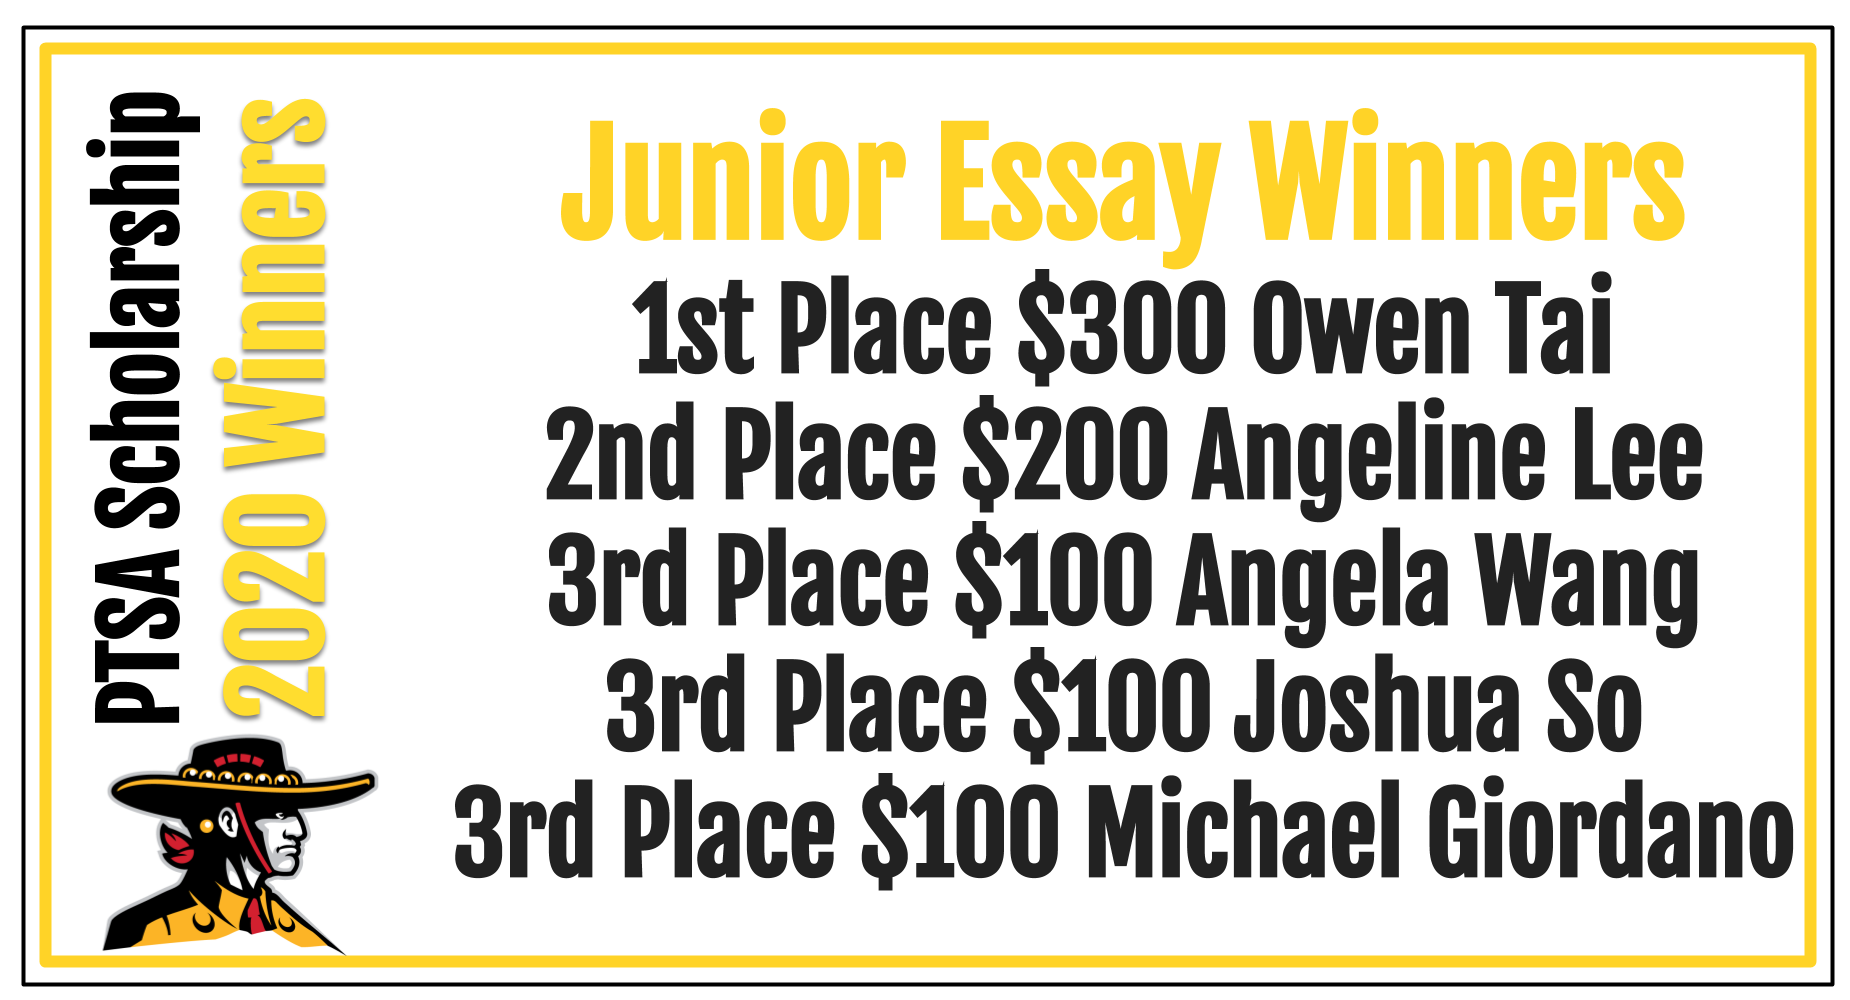 Junior Essay Winners